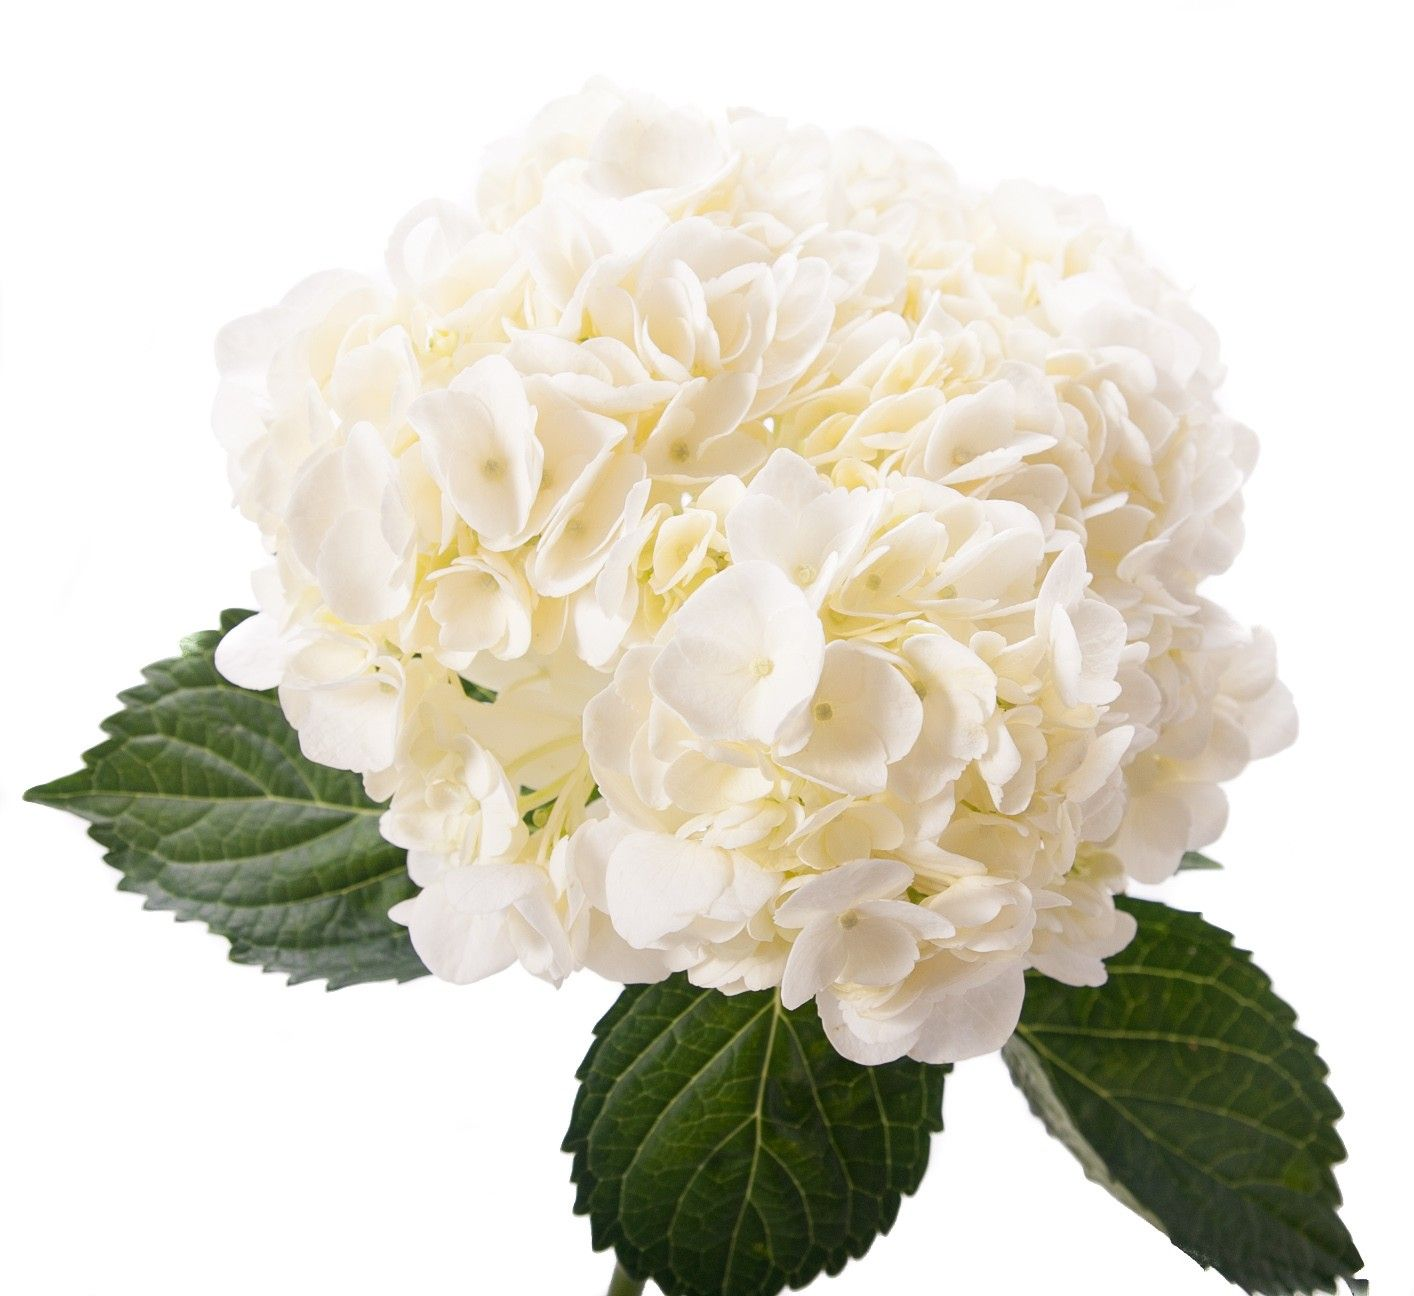 White Hydrangea Bouquets And Jars Must Have A Water Source